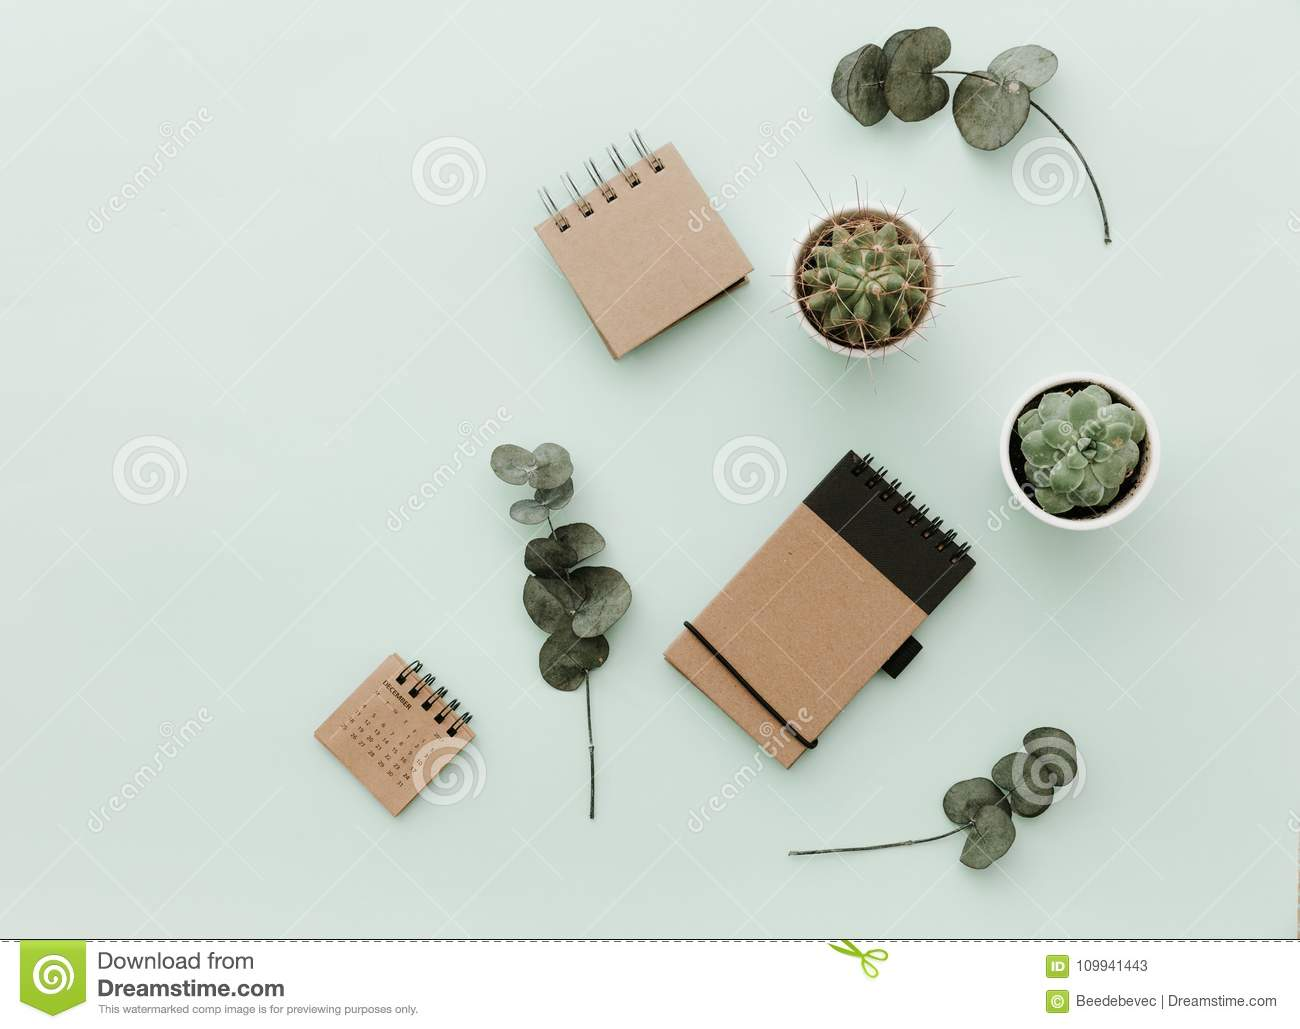 Soft Neutral Styled Desk Scenes With Cactus, craft eco notebooks